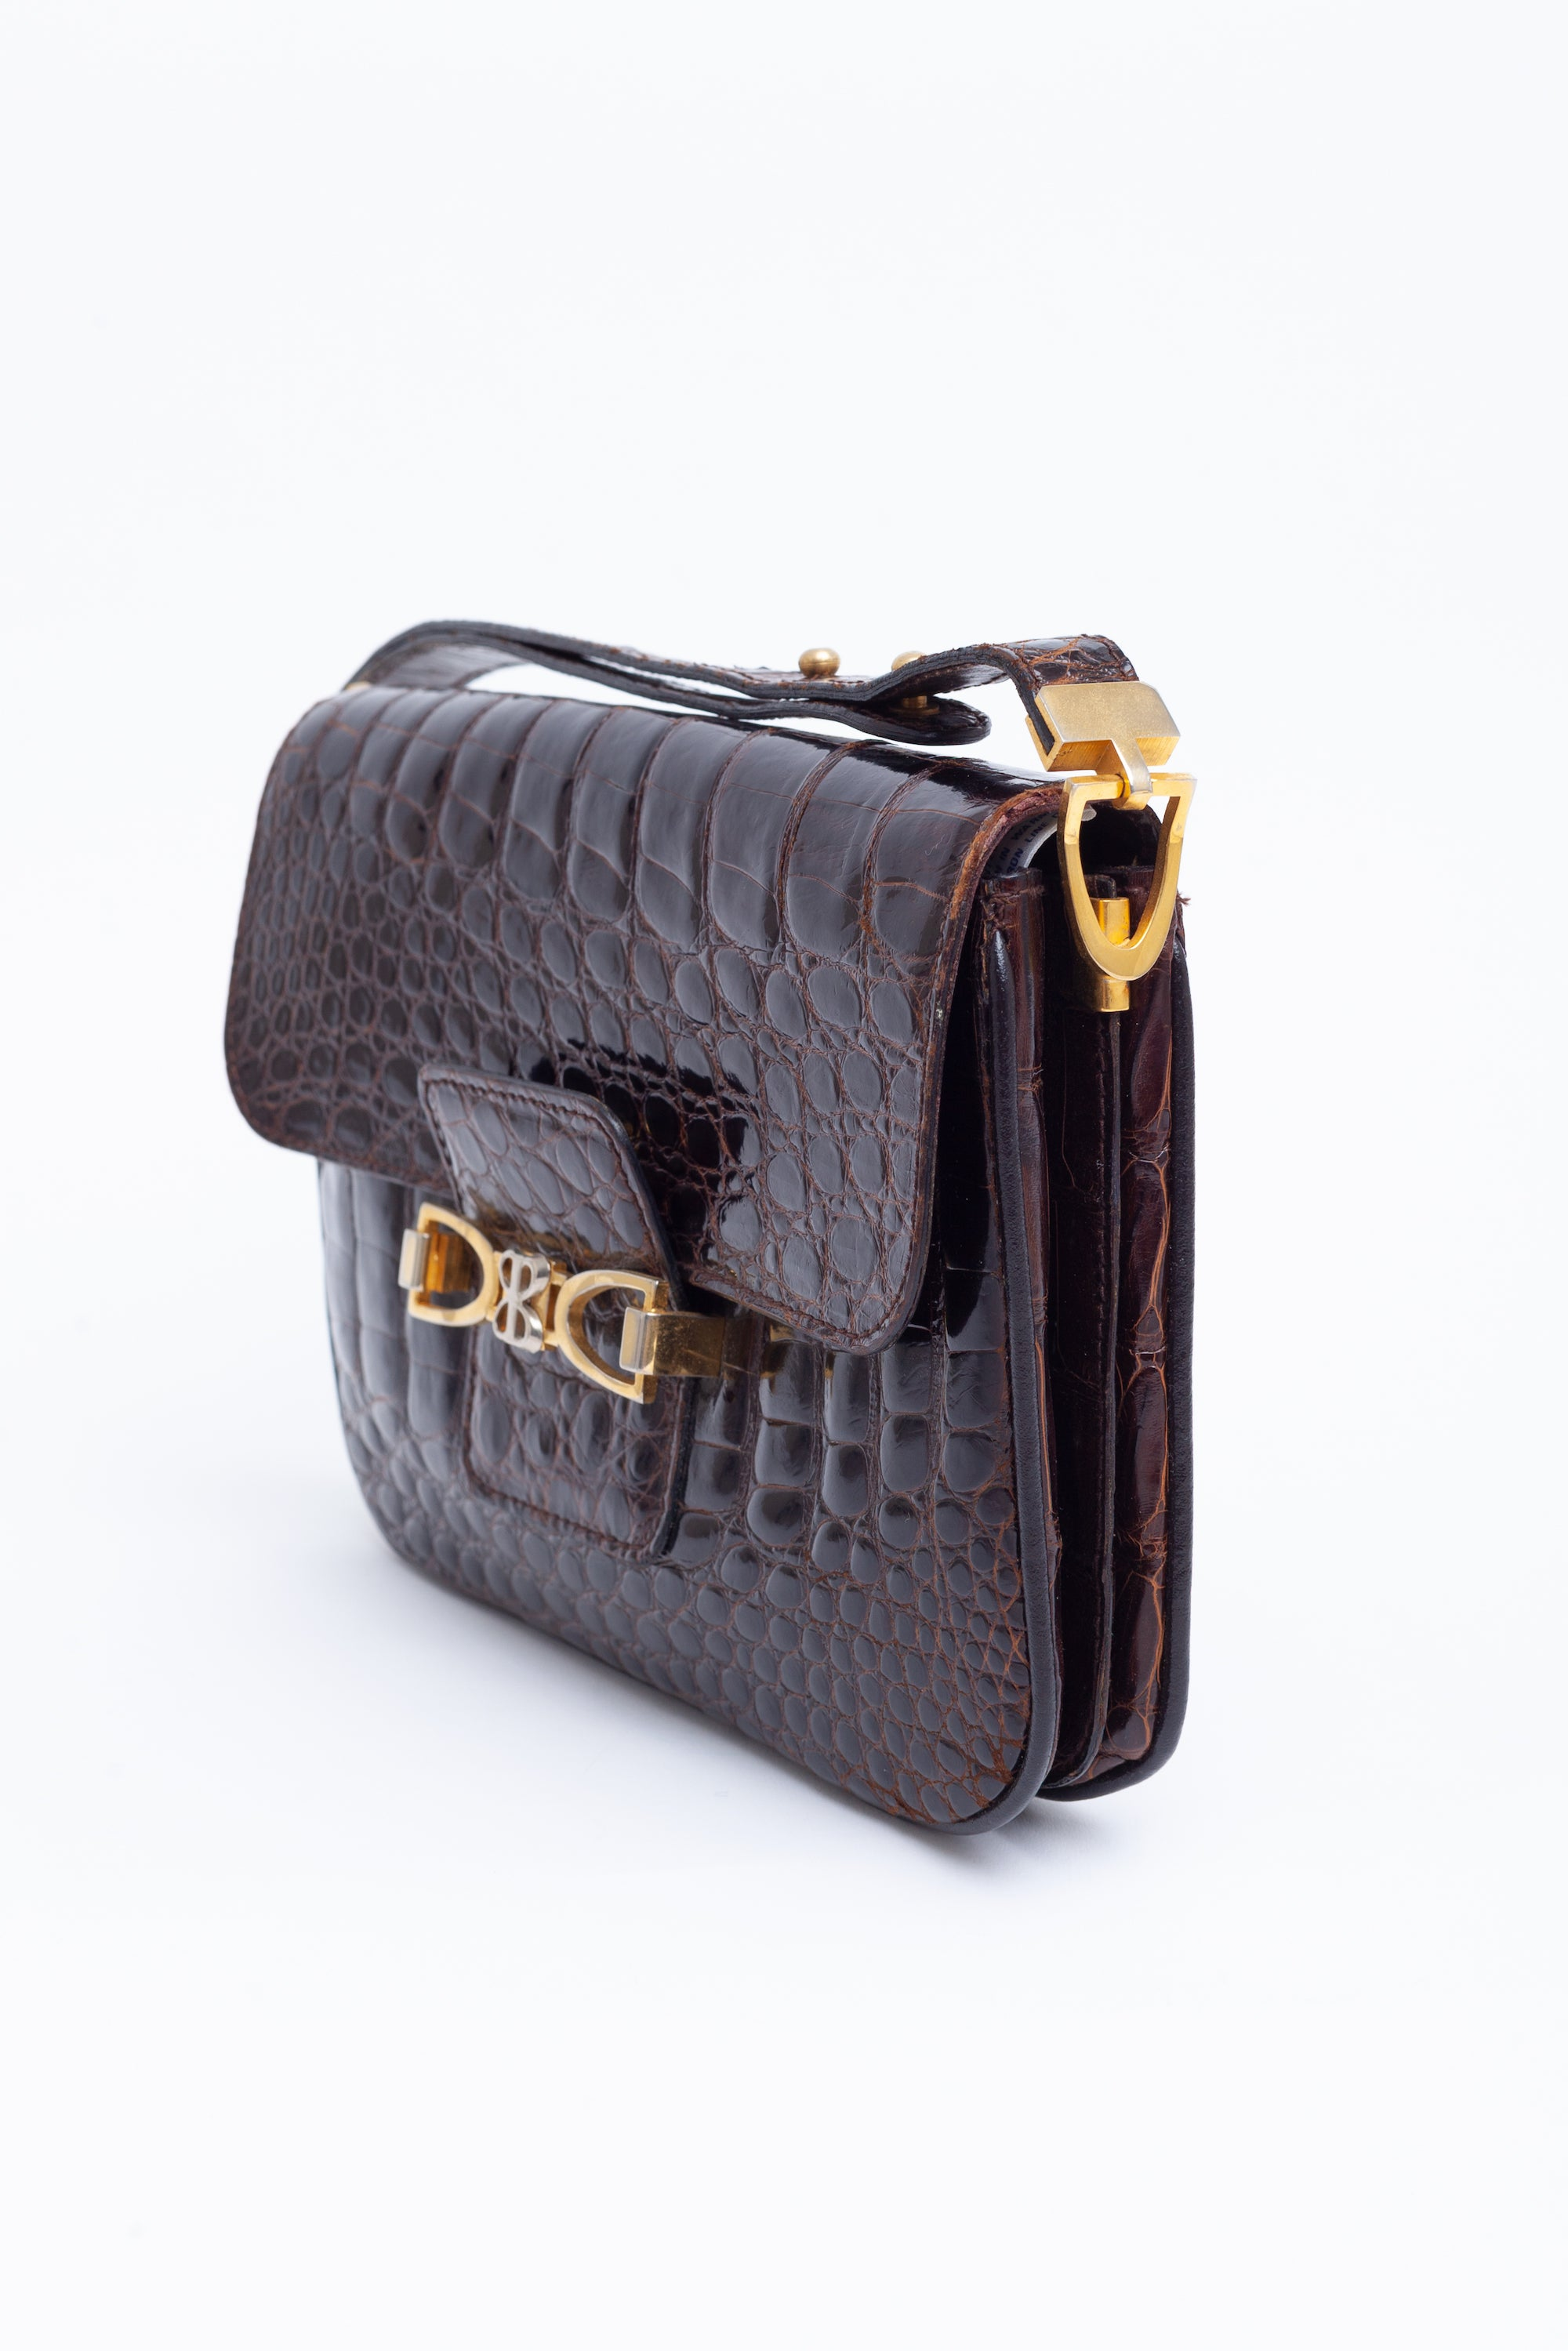 Balenciaga <br> 1970's De Luxe logo crocodile effect leather shoulder bag